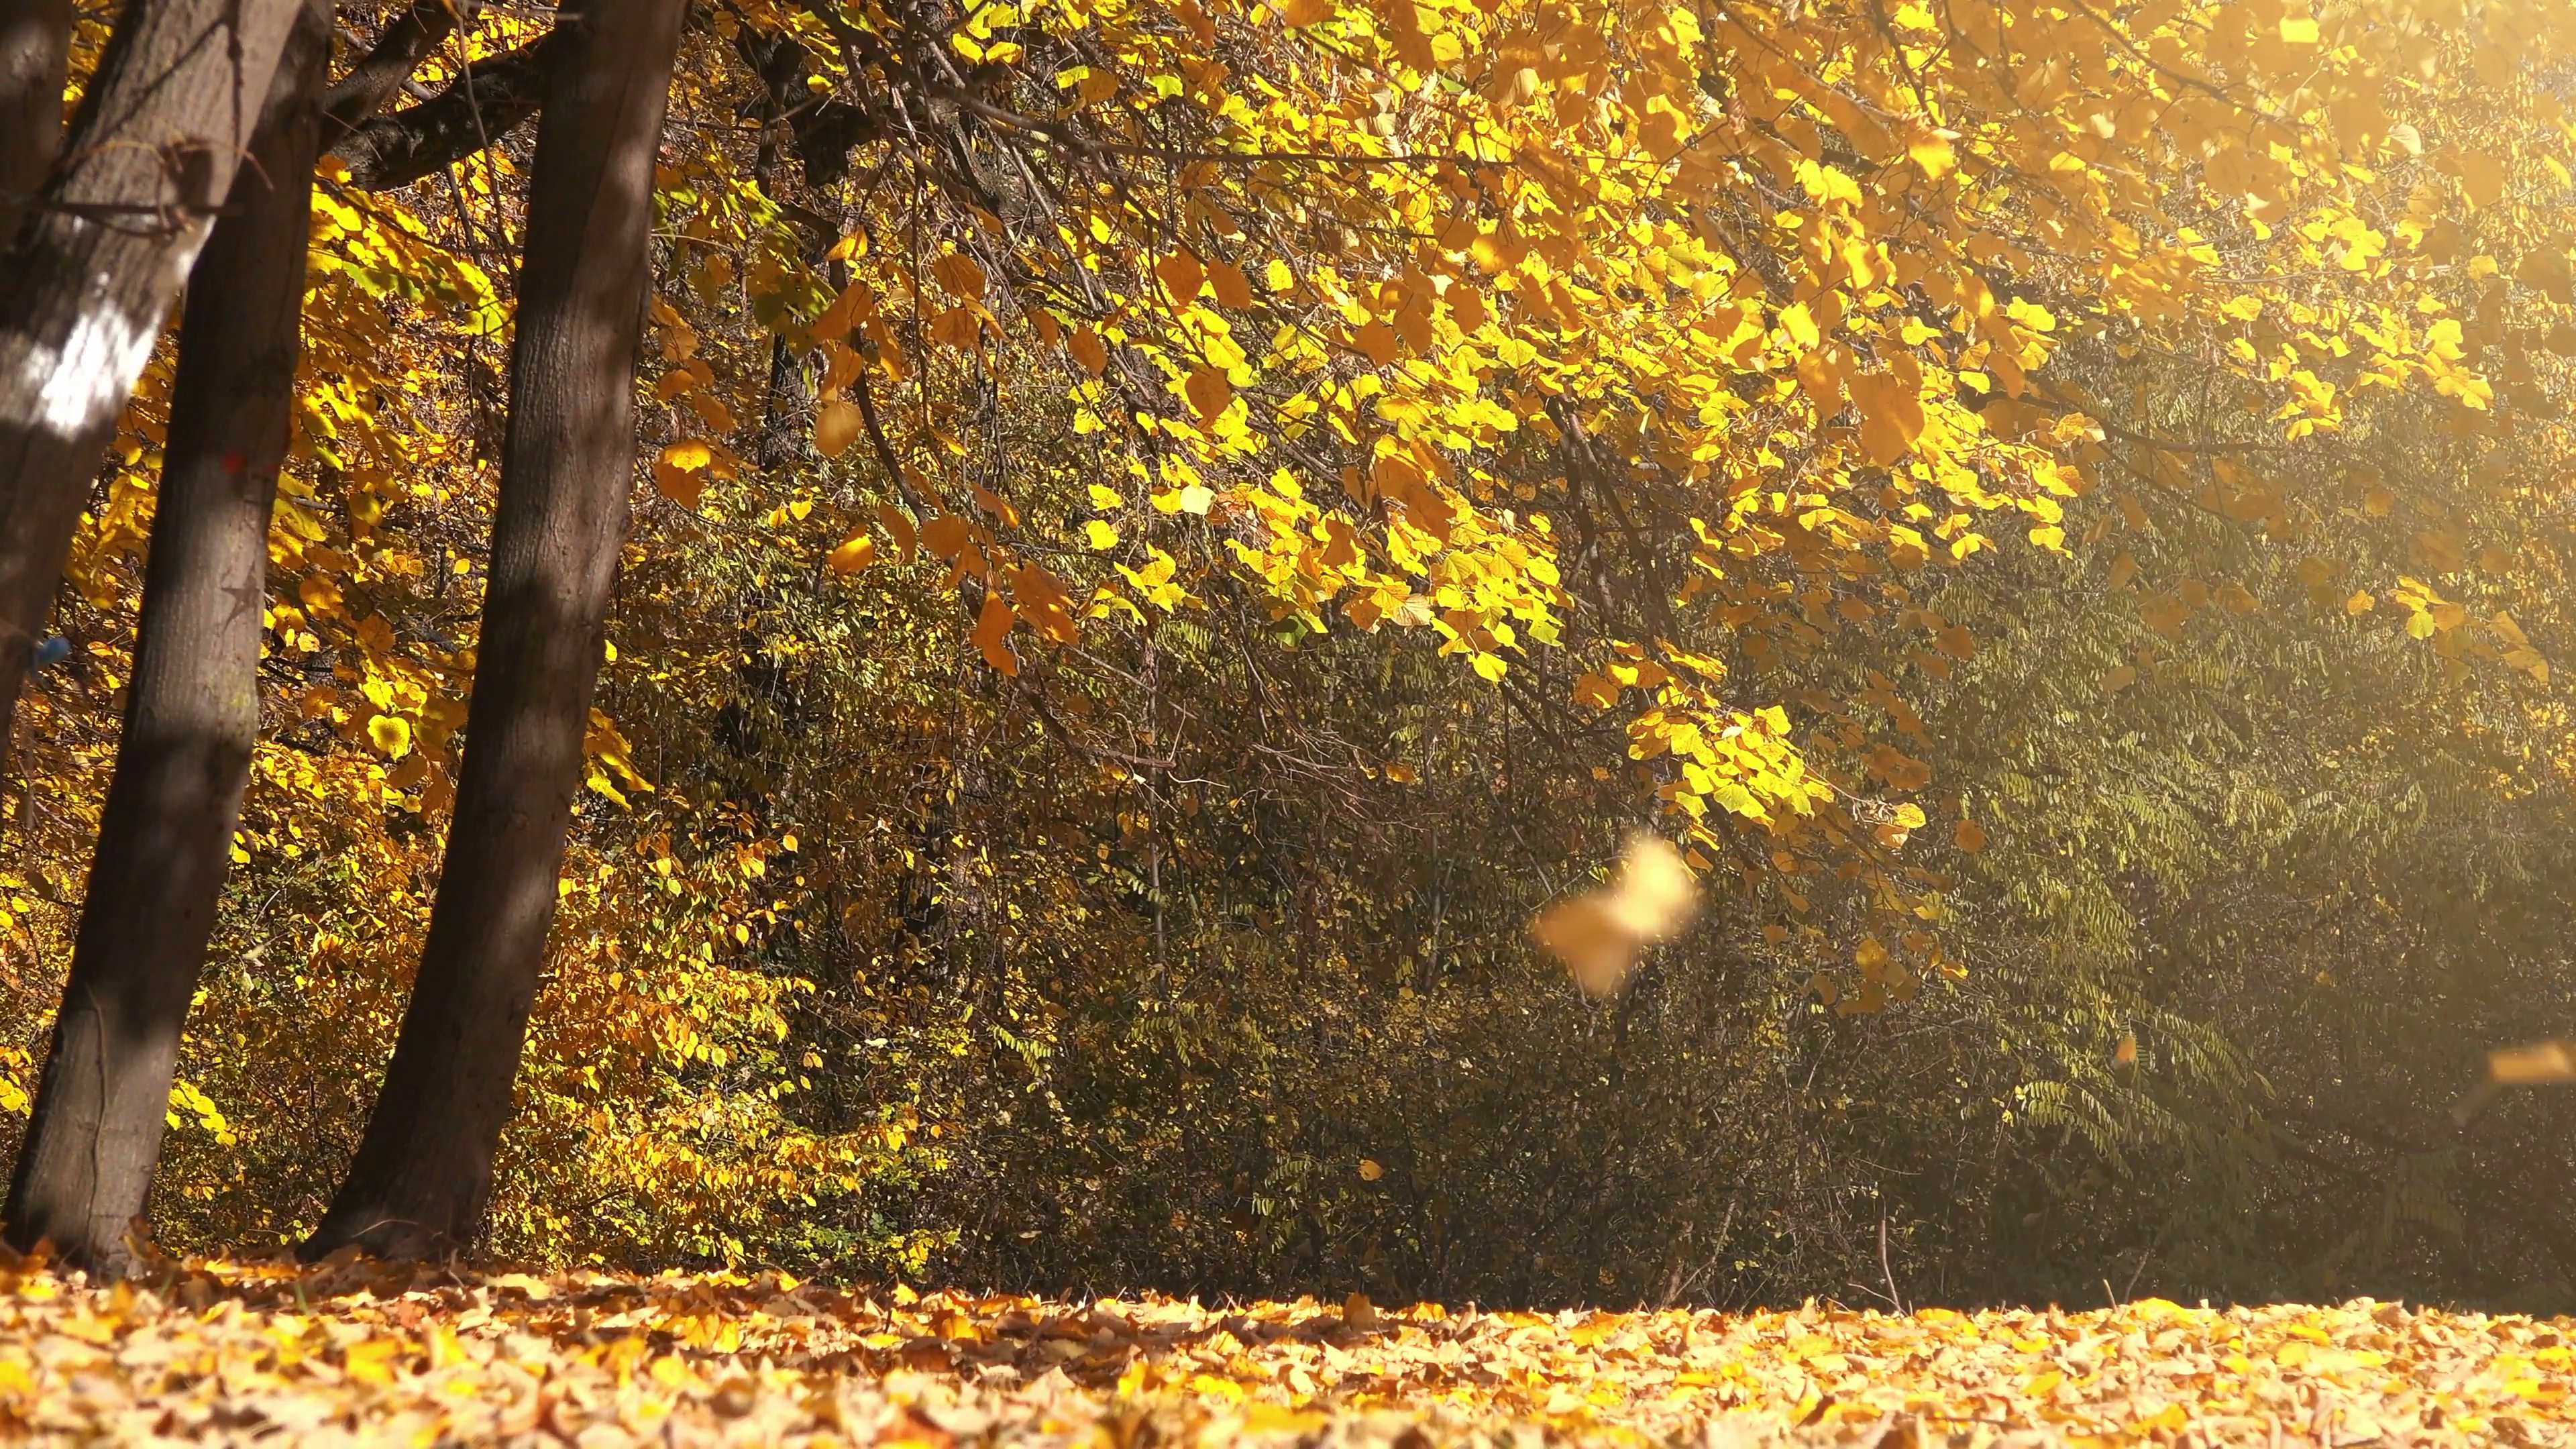 Slow motion of falling autumn leaves, shedding treetops in park ...